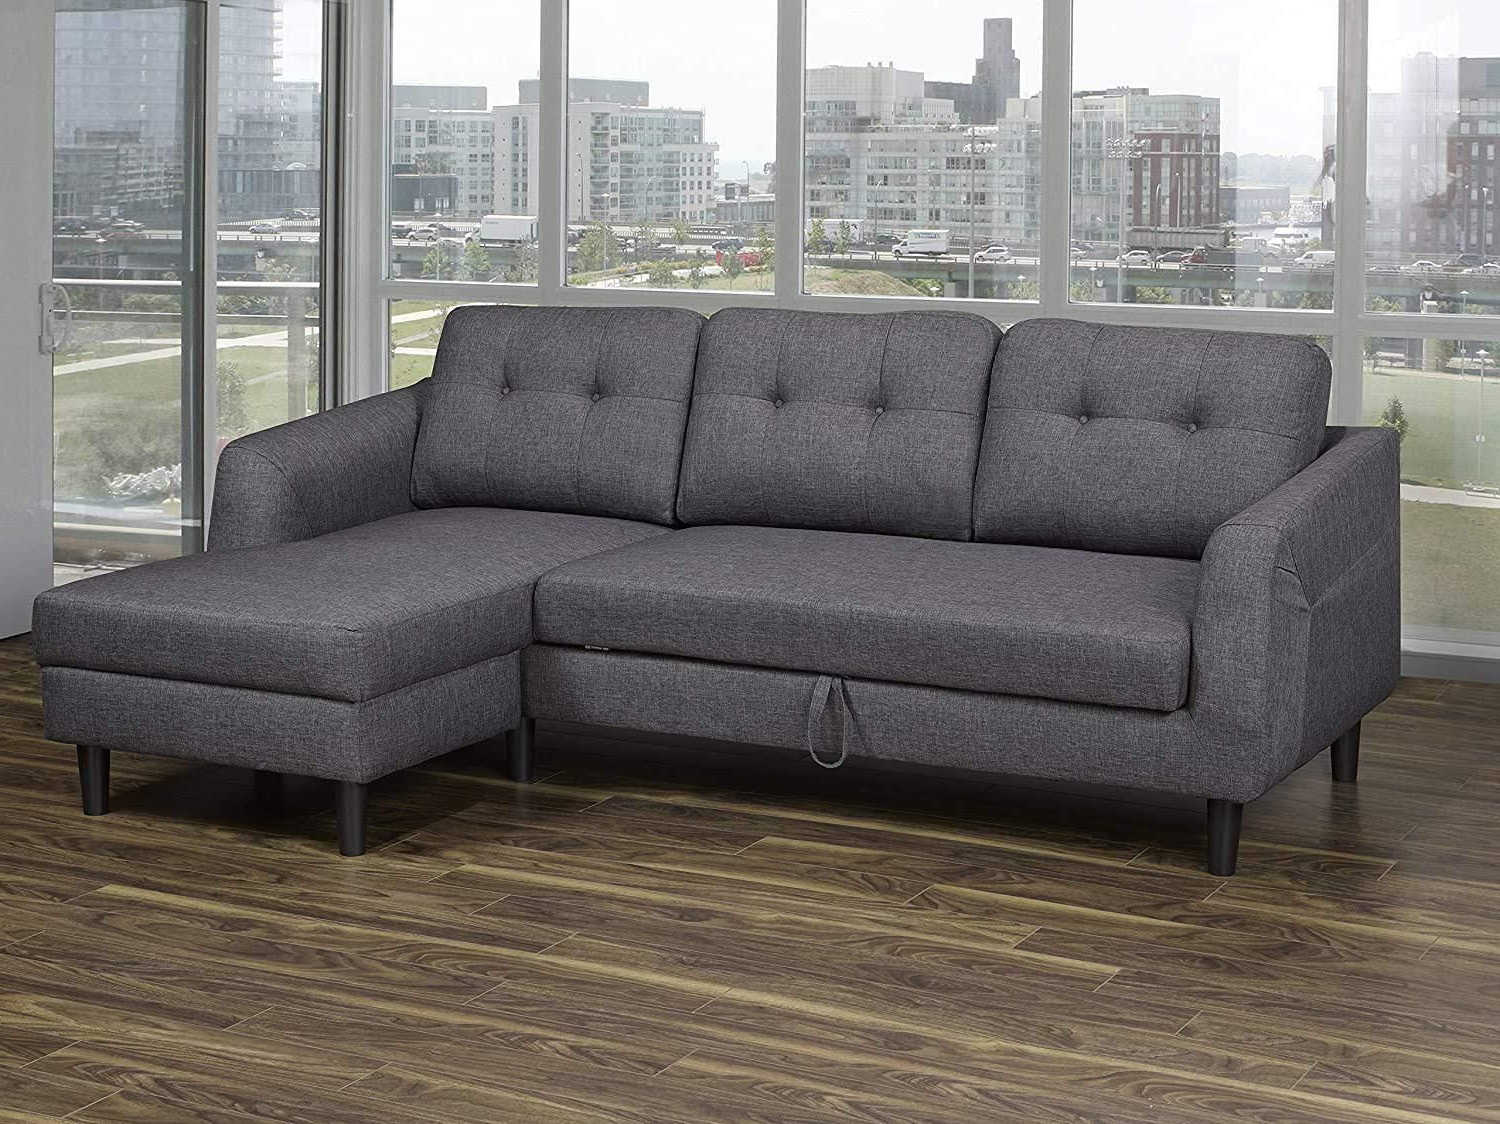 Newest K Living Katie Linen Fabric Sofa Bed Sectional In Dark With Polyfiber Linen Fabric Sectional Sofas Dark Gray (View 3 of 25)